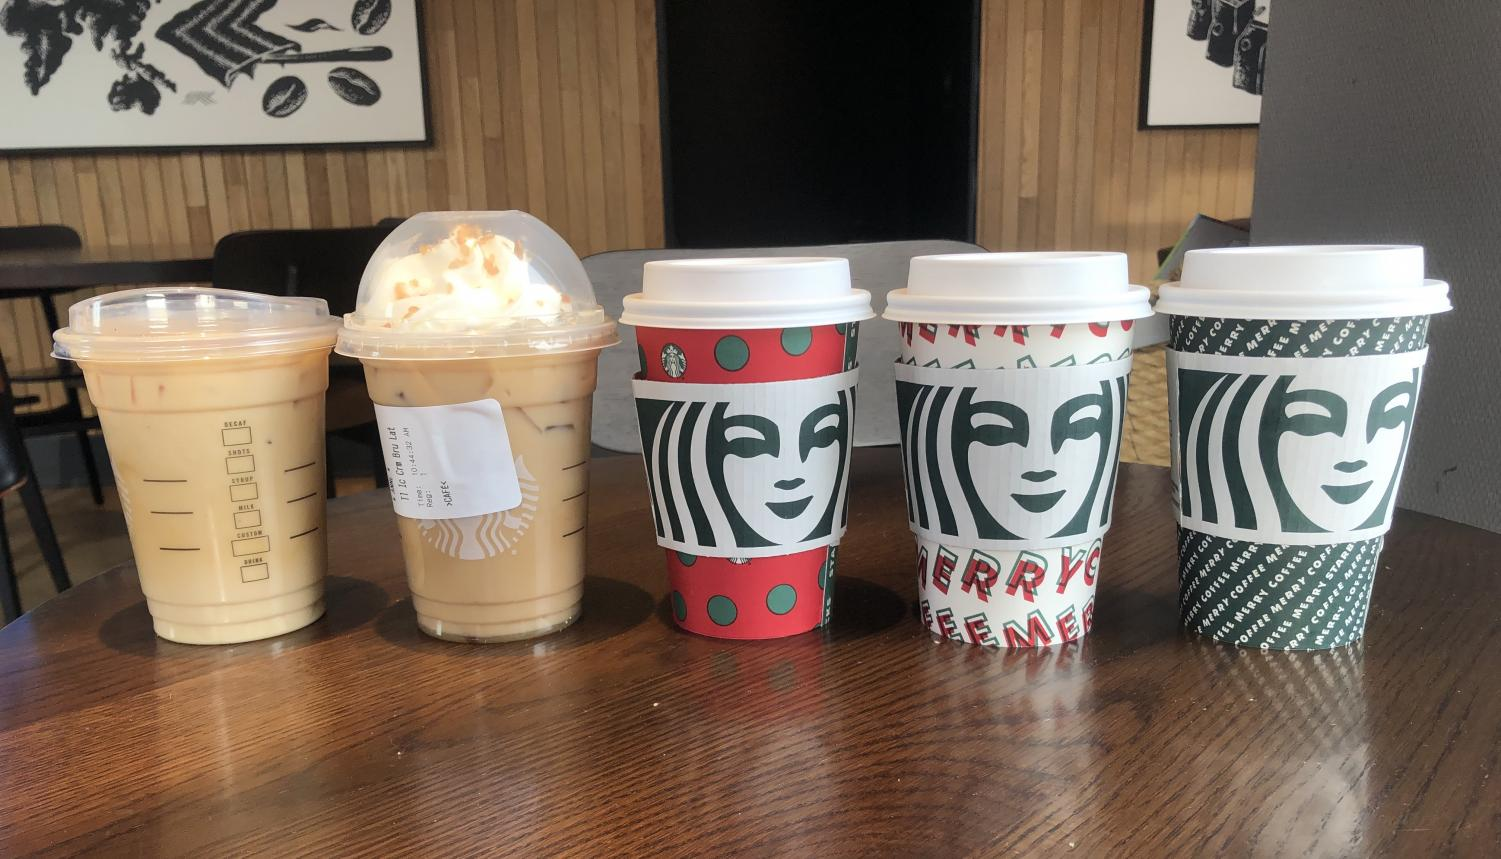 The lineup of holiday drinks available at Starbucks.